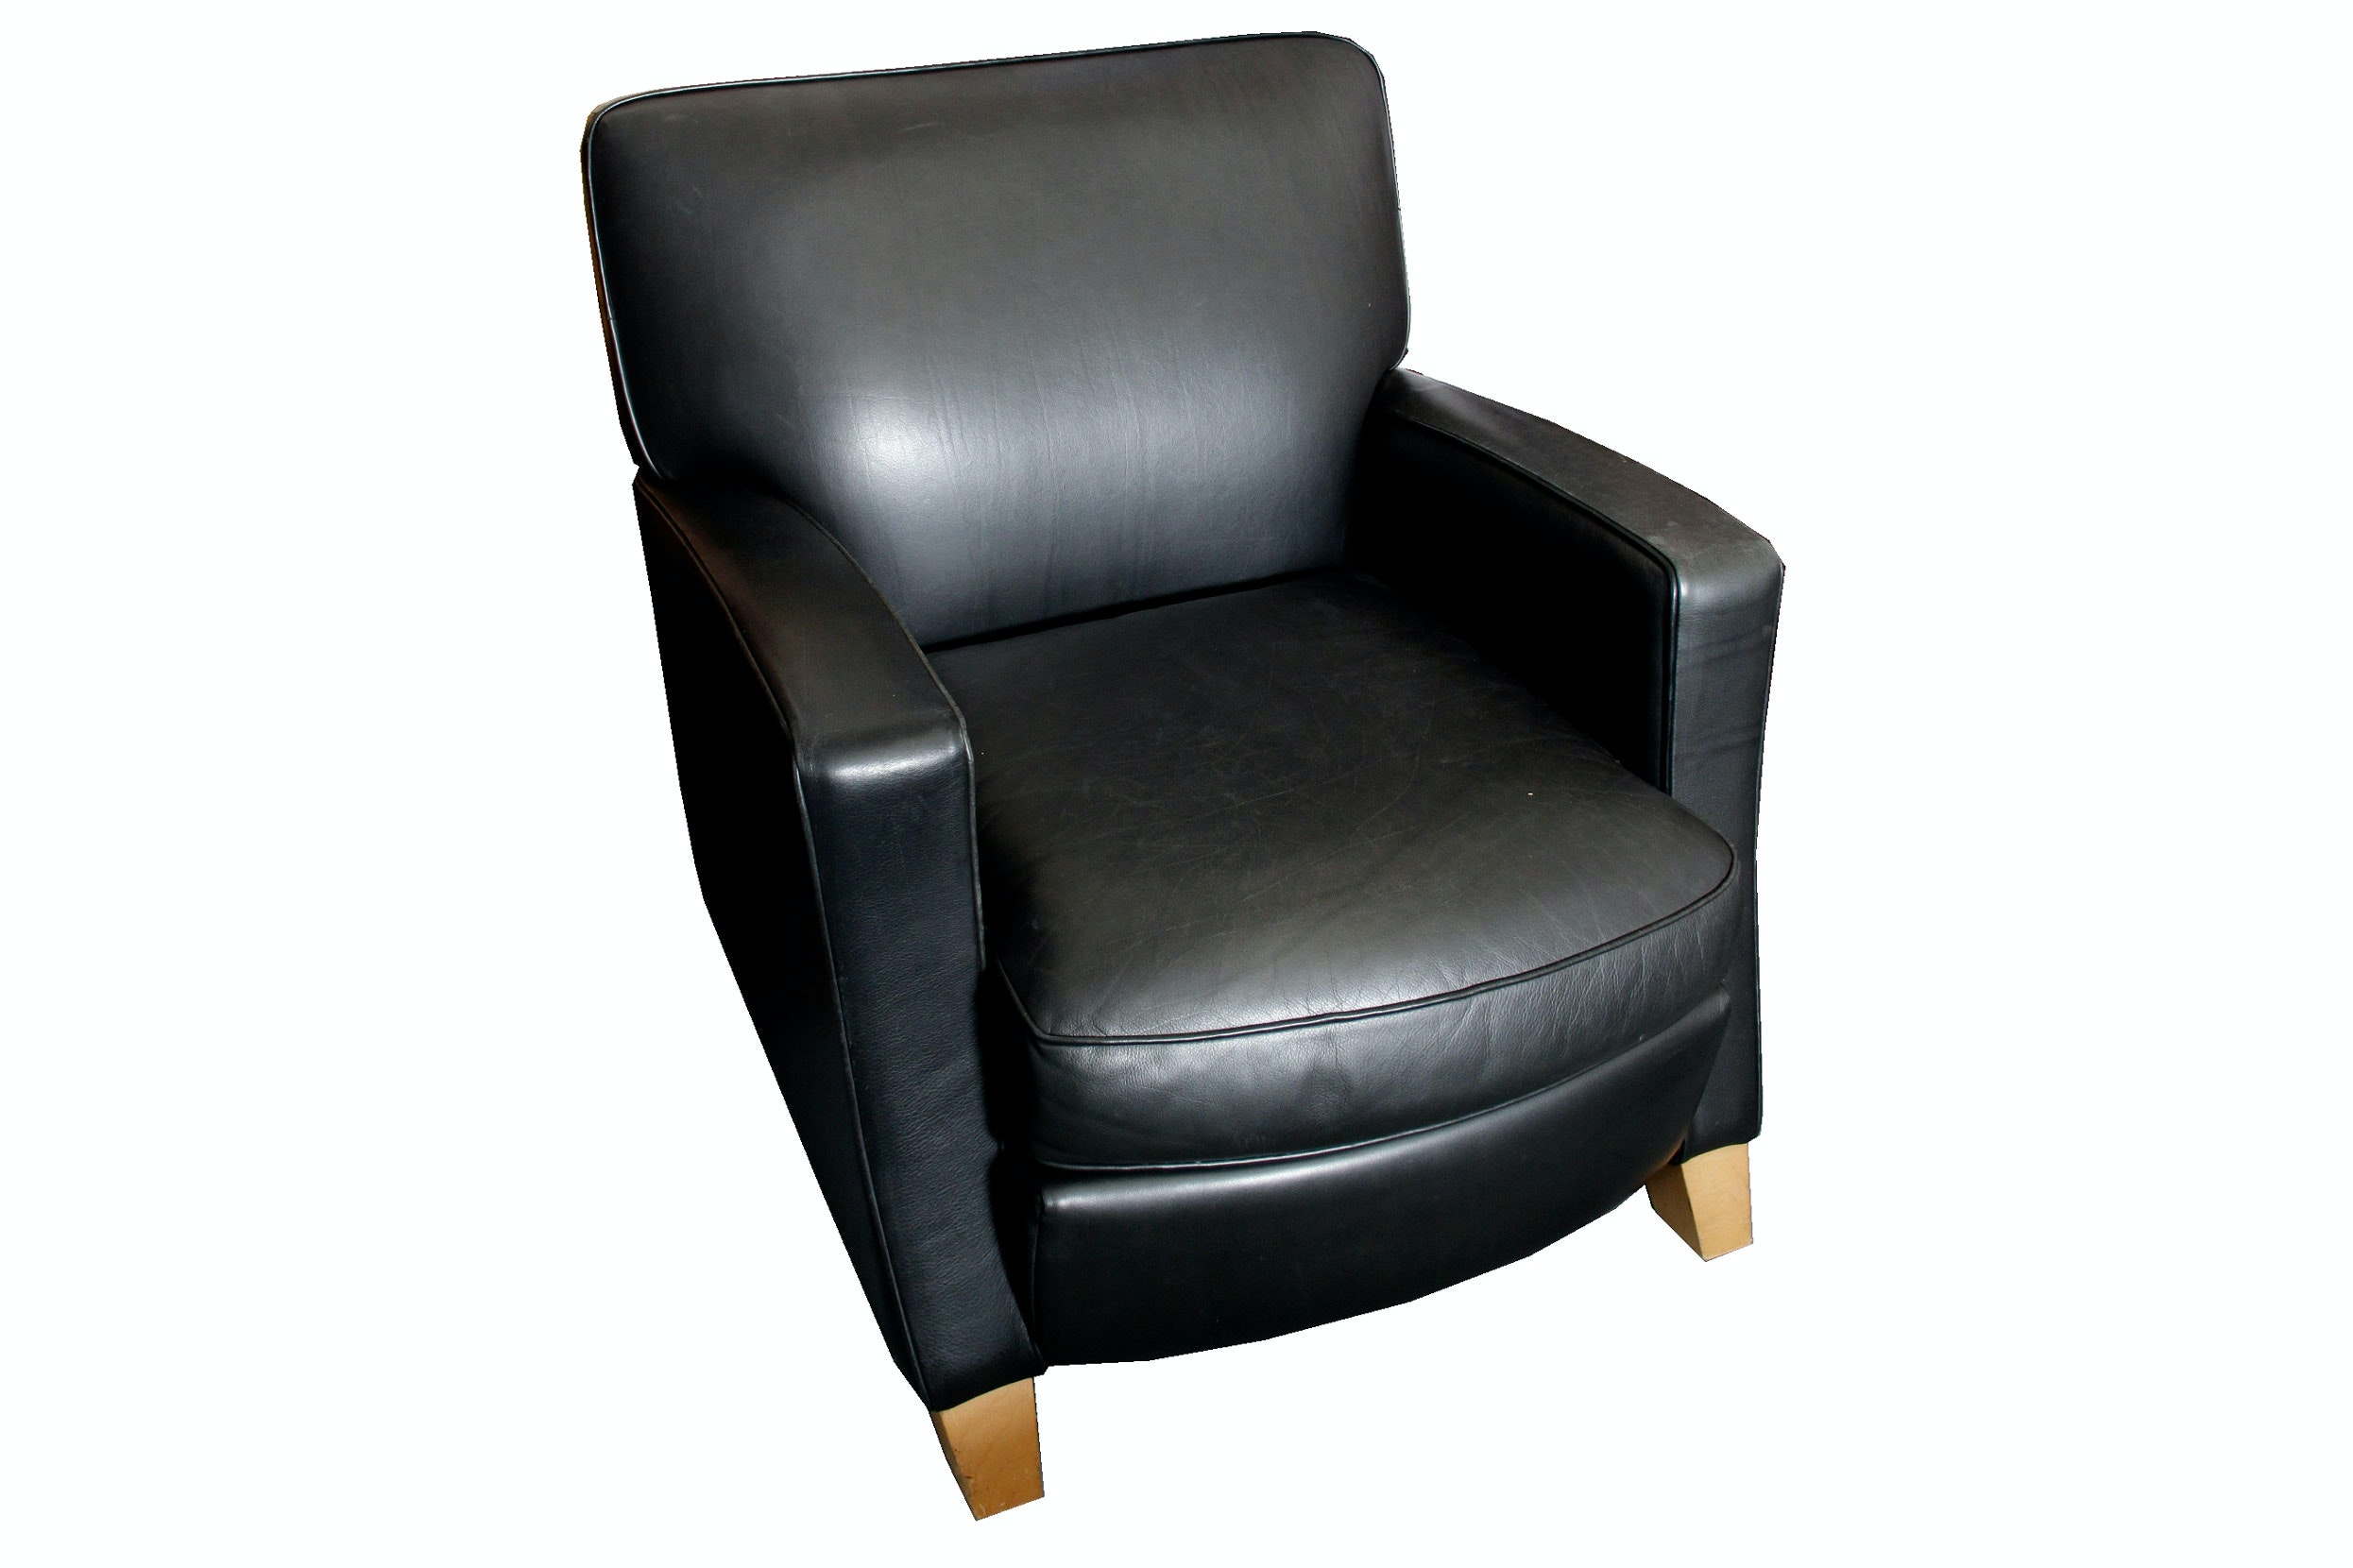 Cantoni Black Leather Paris Chair by American Leather Studio